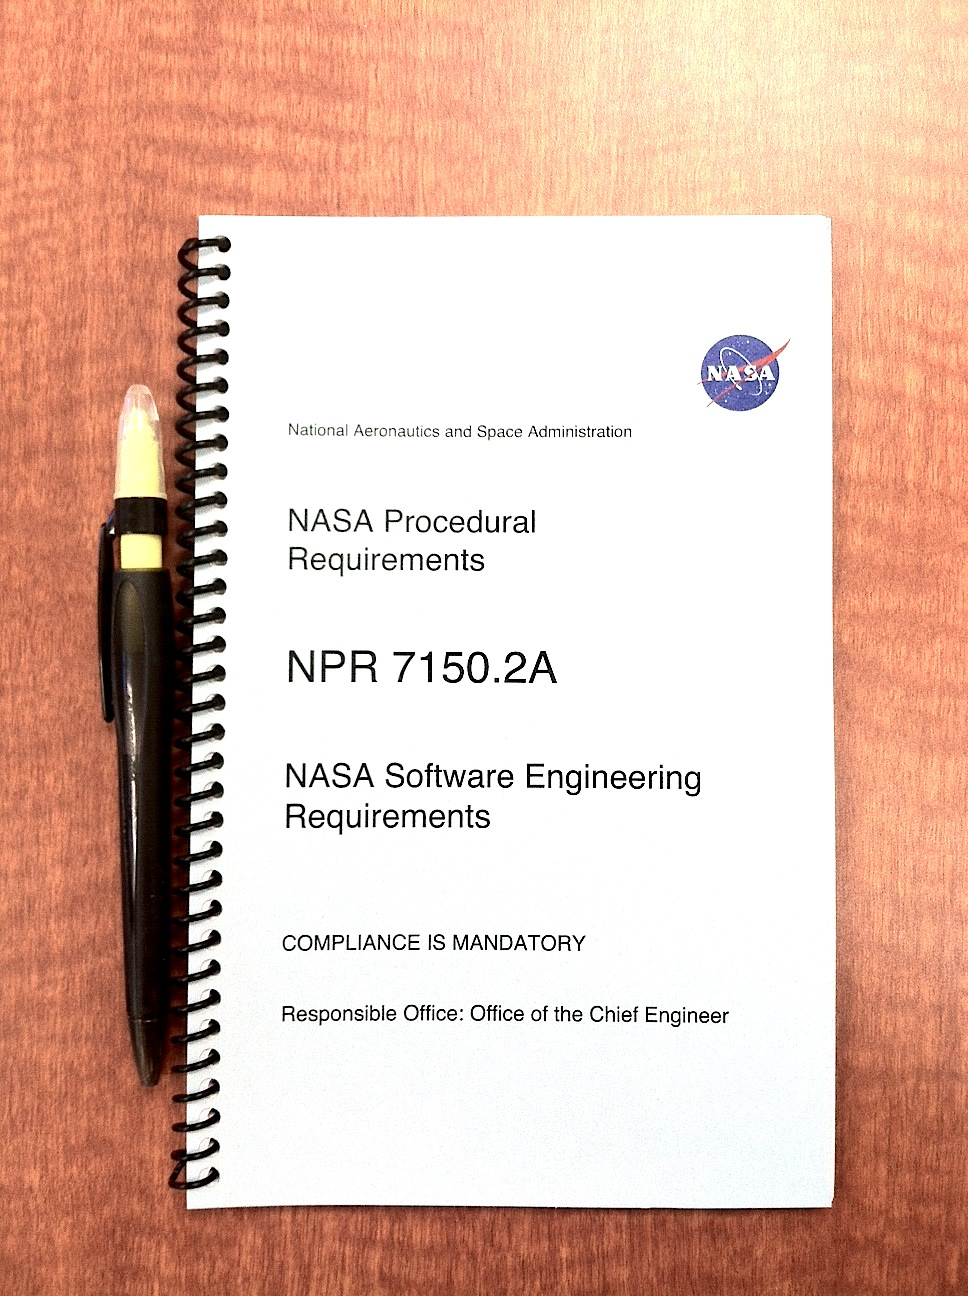 Picture of NASA Procedural Requirement 7150.2A, which outlines NASA's software engineering requirements.